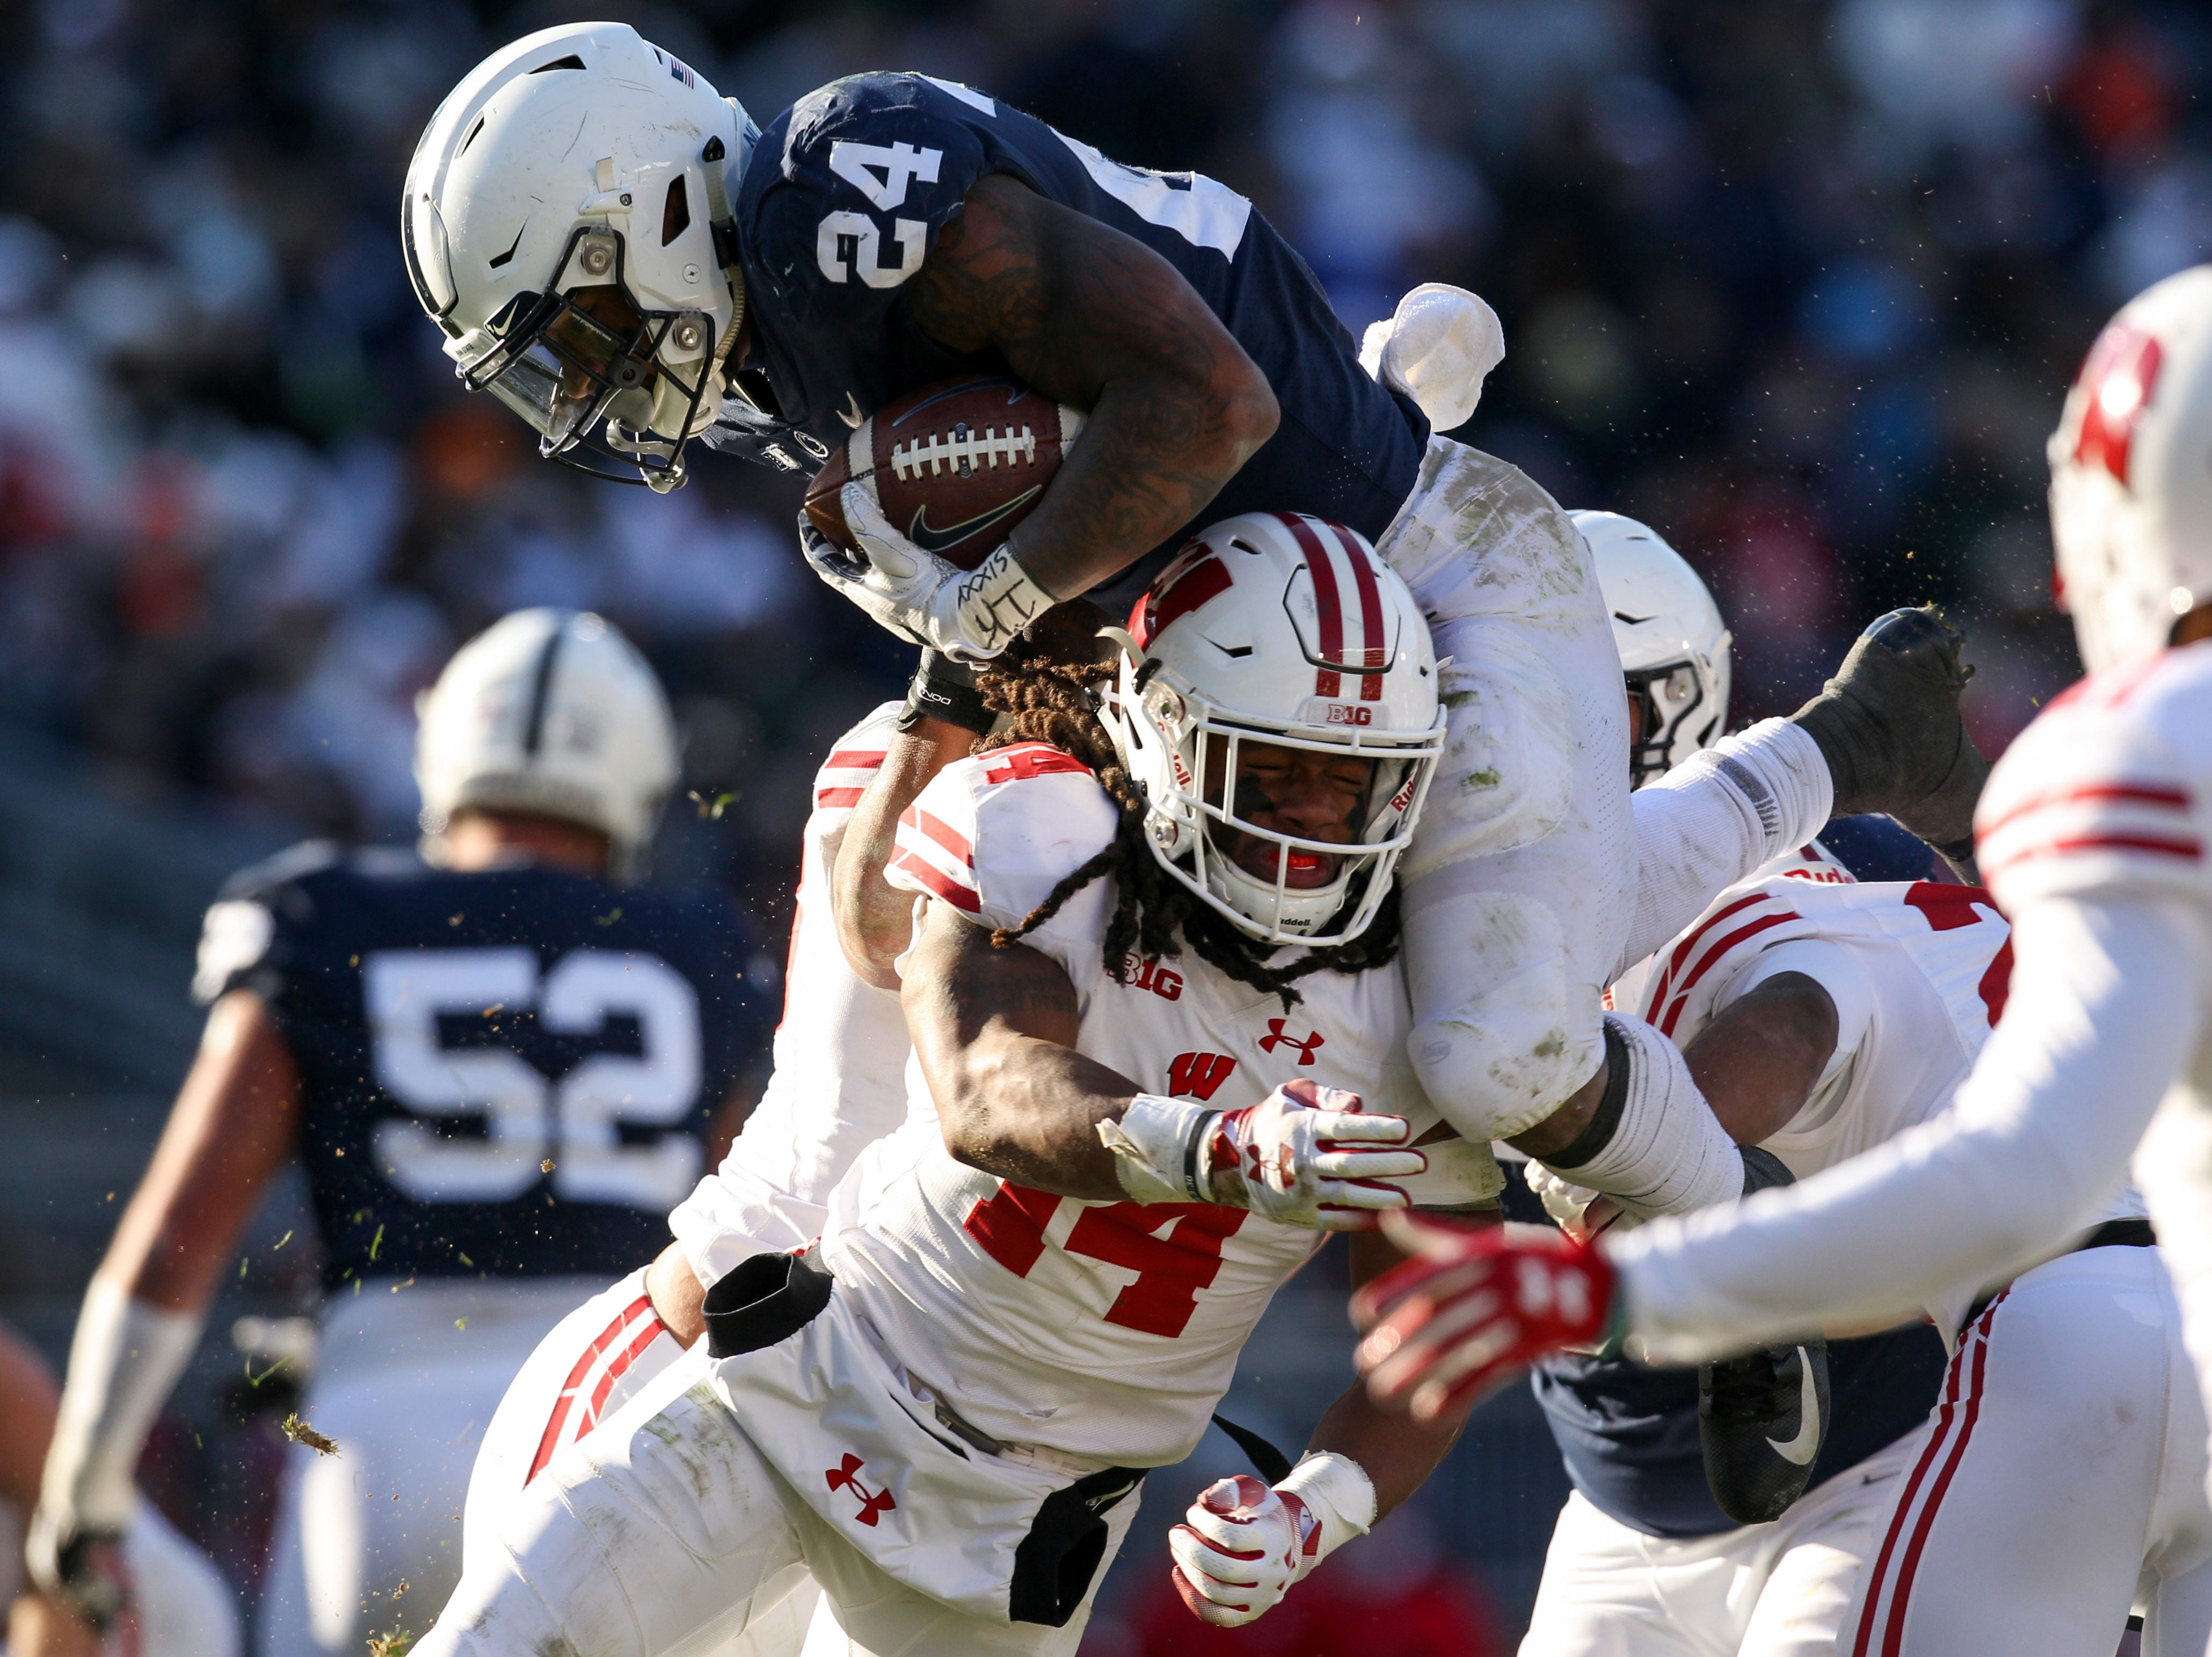 Nov 10, 2018; University Park, PA, USA; Penn State Nittany Lions running back Miles Sanders (24) leaps over Wisconsin Badgers safety D'Cota Dixon (14) during the fourth quarter at Beaver Stadium. Penn State defeated Wisconsin 22-10. Mandatory Credit: Matthew O'Haren-USA TODAY Sports